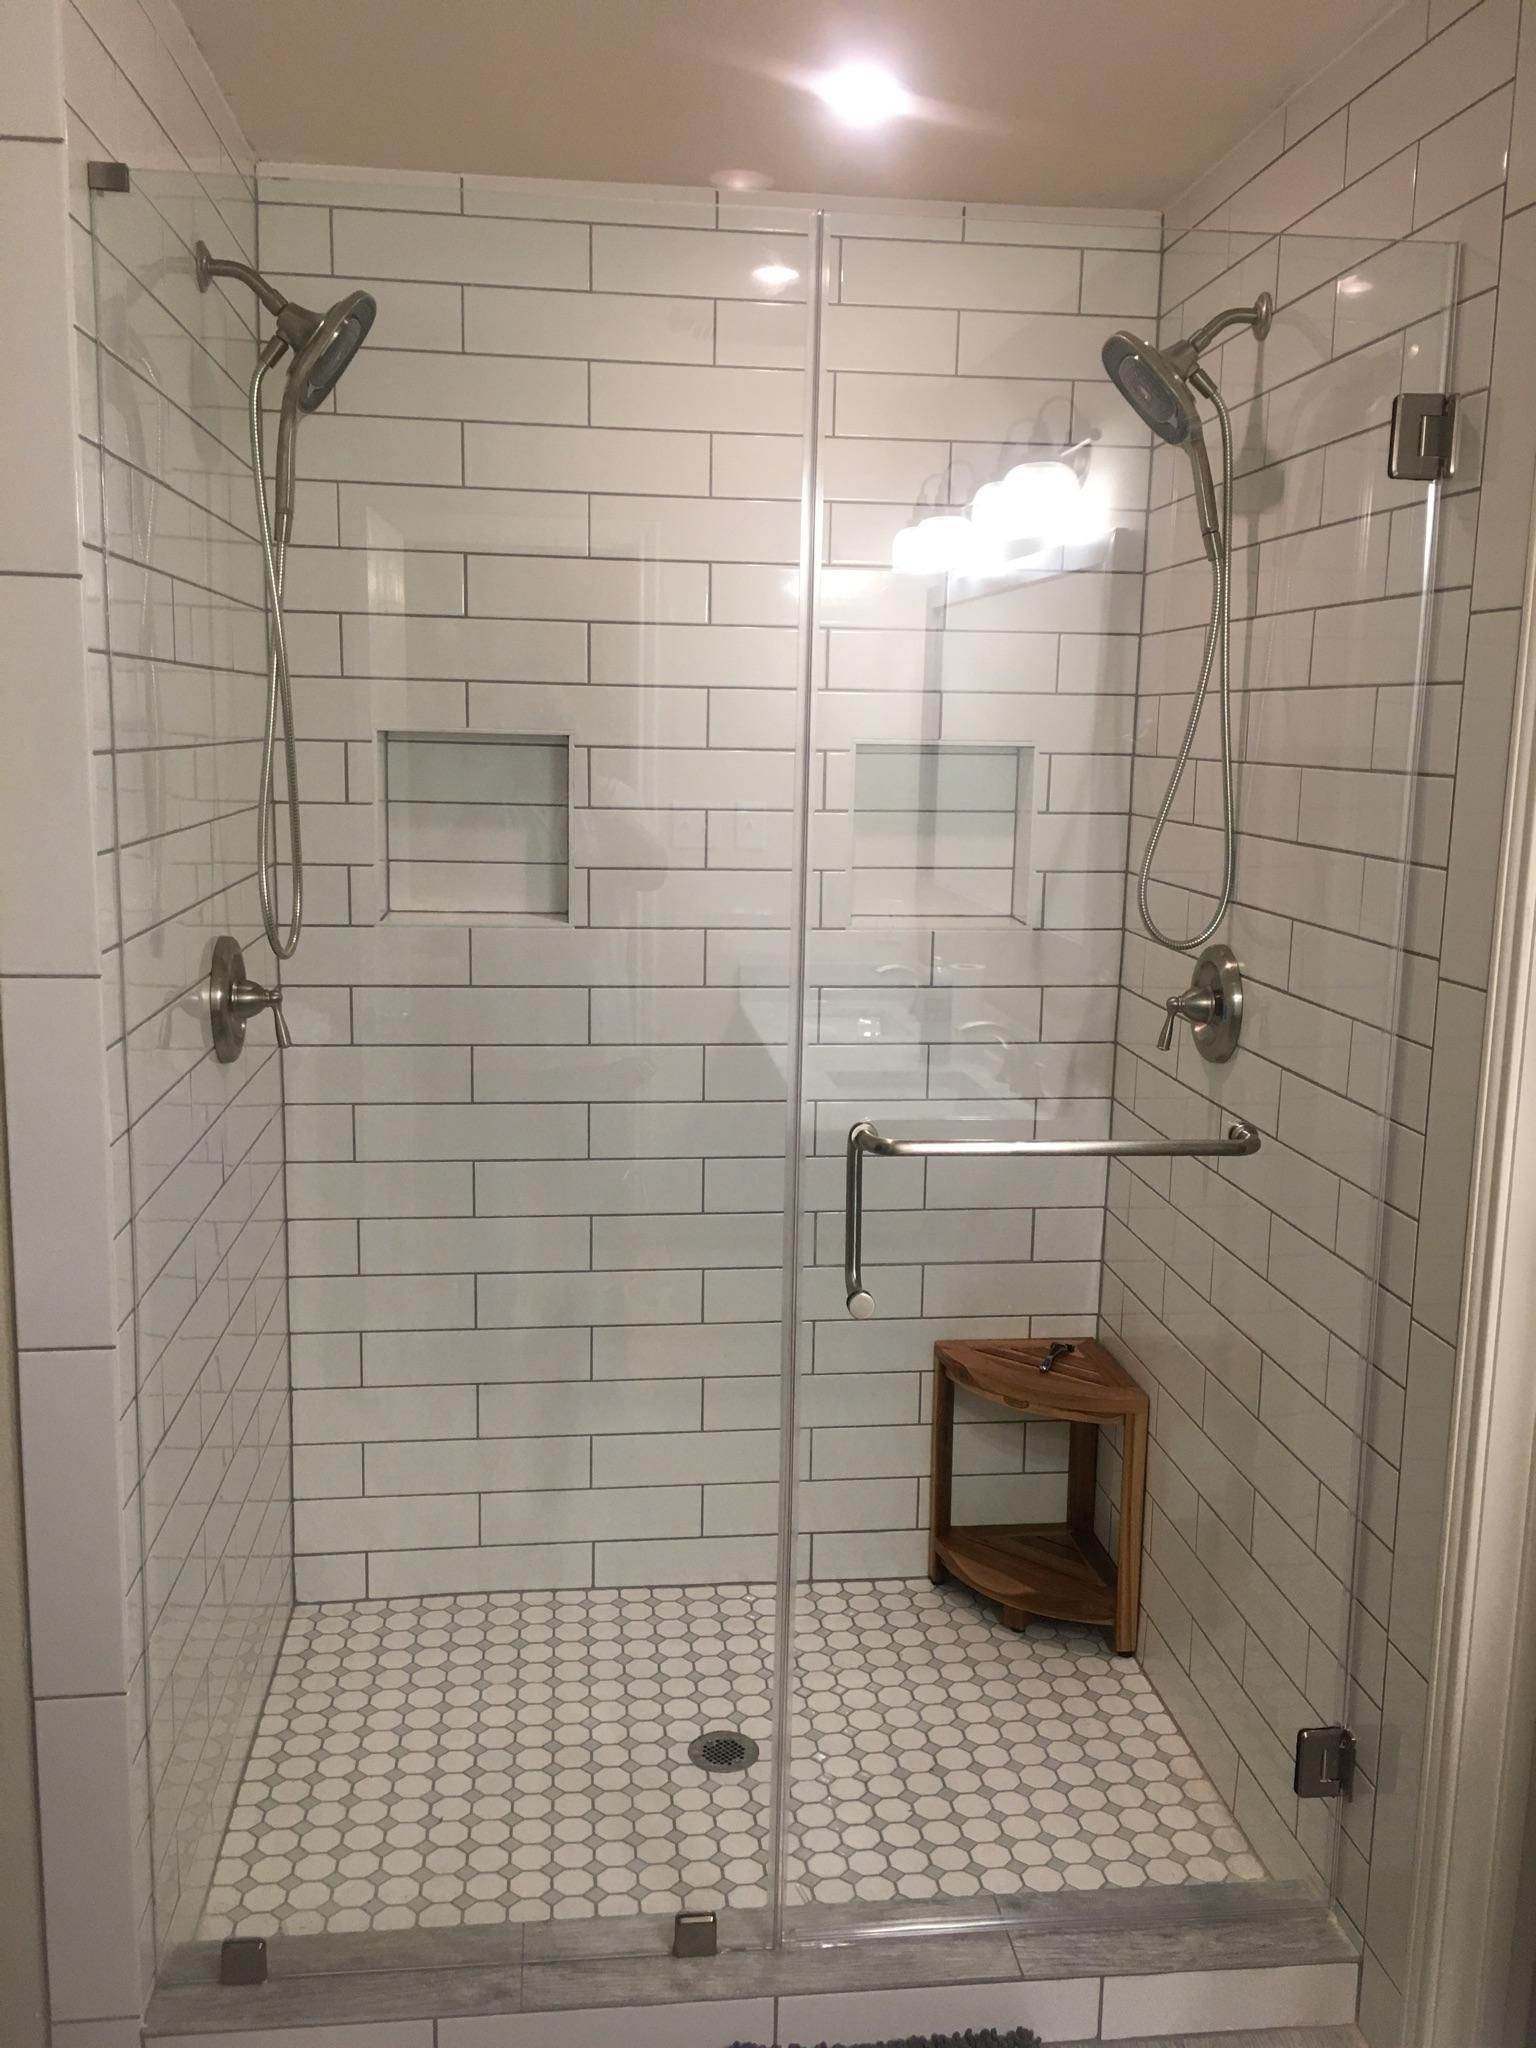 Master Bath Remodel 4 X 16 Subway Tile With Gray Grout Bath